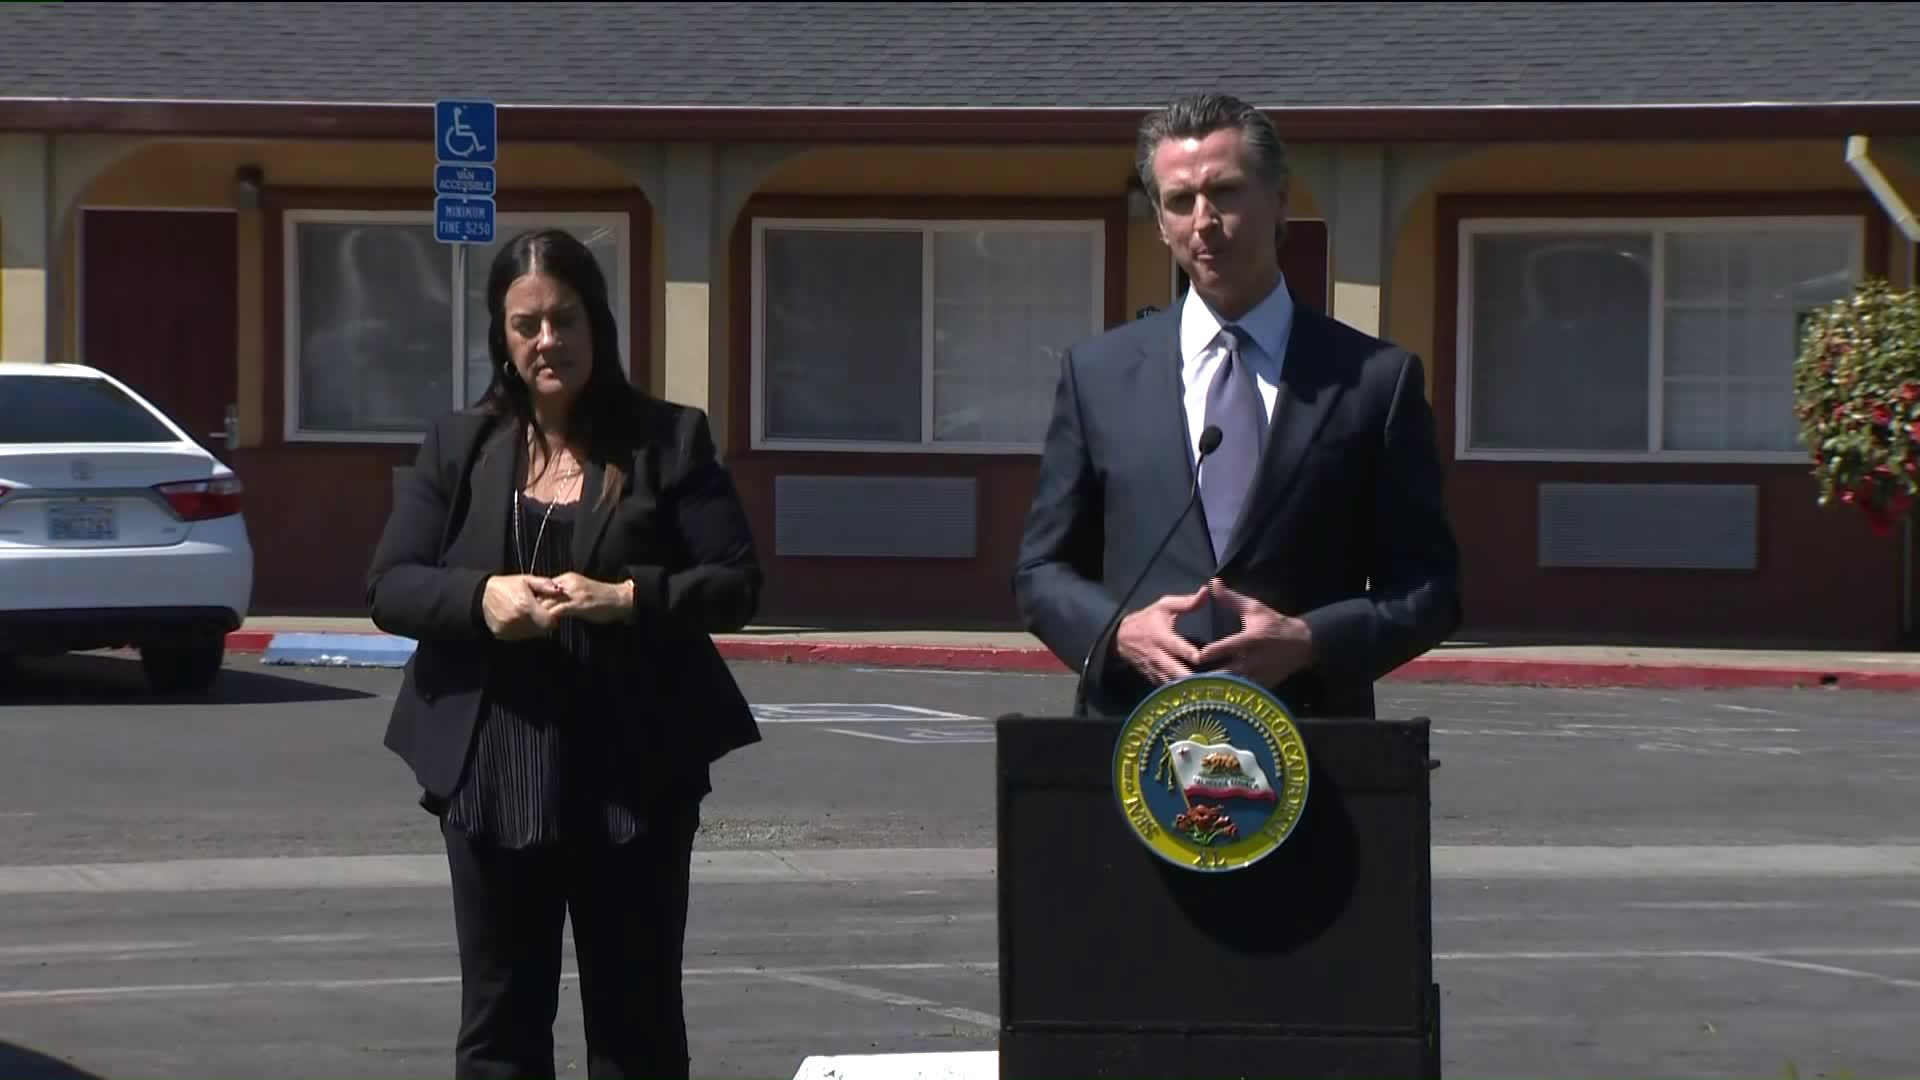 Gov. Gavin Newsom speaks at a news conference in Sacramento on April 3, 2020. (Pool)